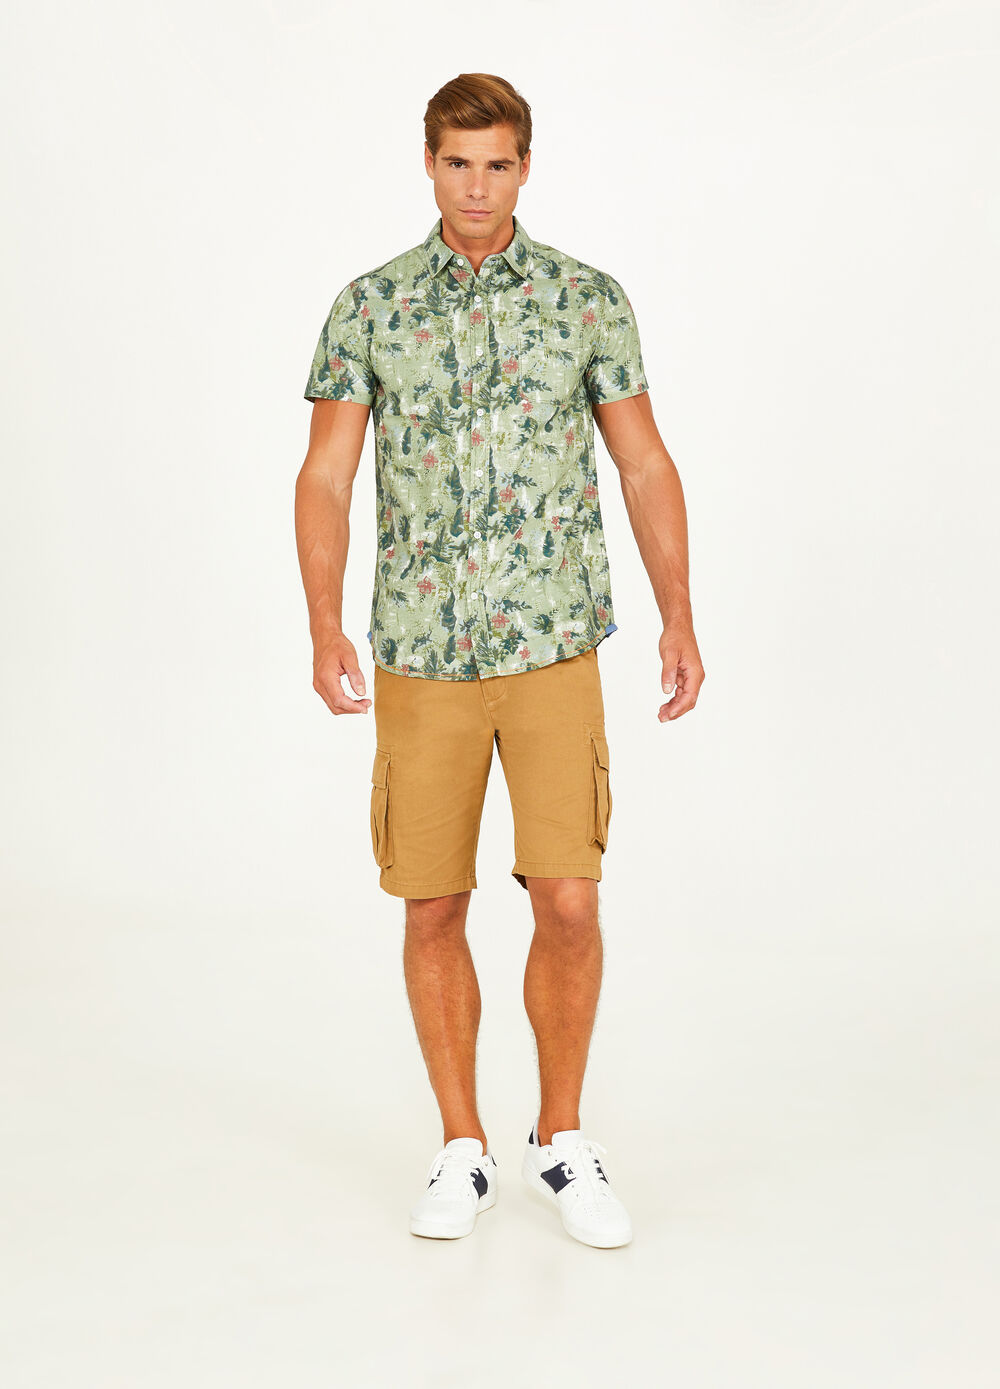 Casual floral foliage patterned shirt